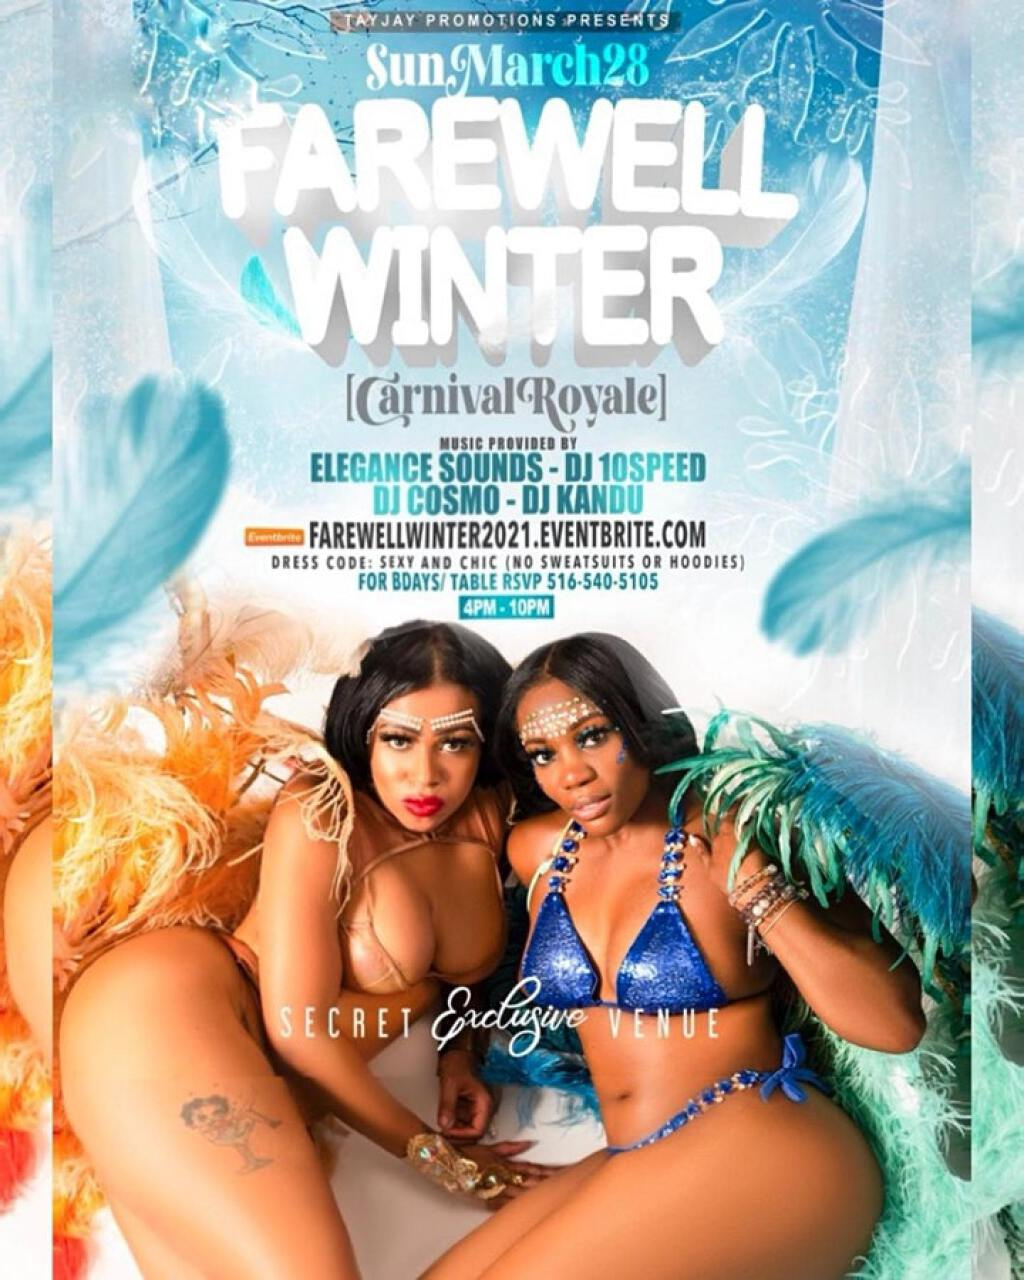 Farewell Winter: Carnival Royale flyer or graphic.